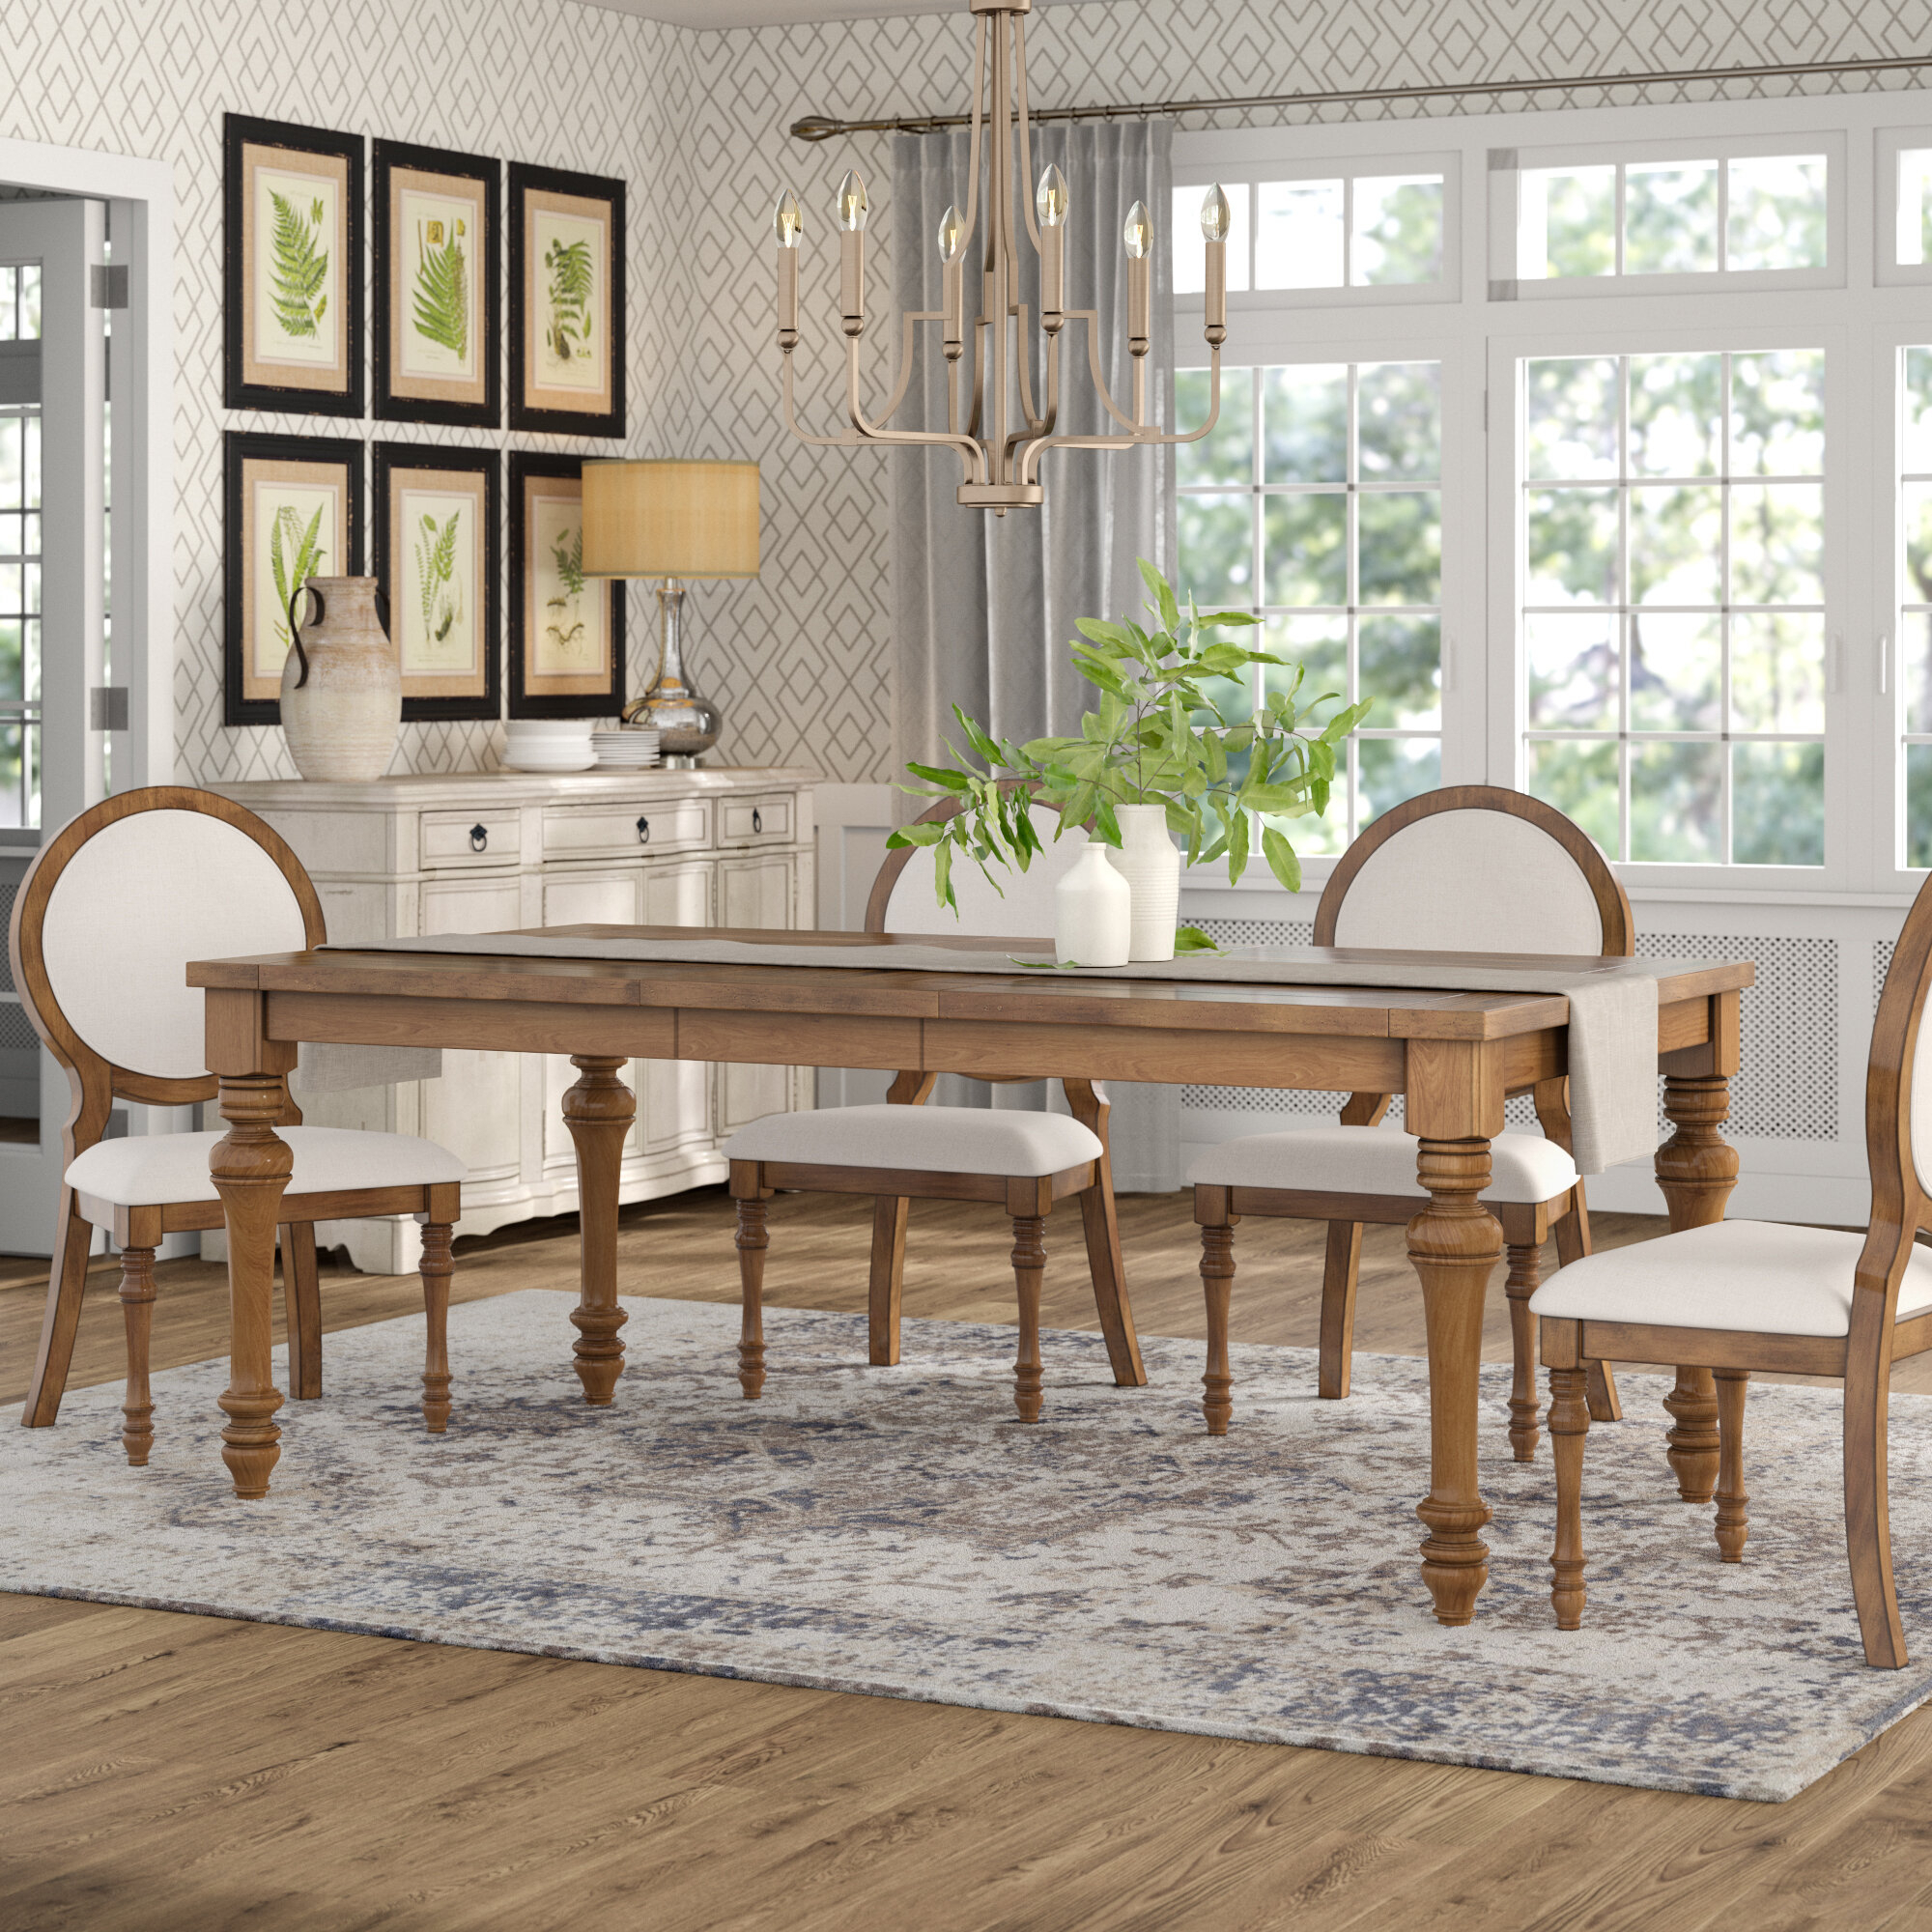 Calila Extendable Dining Table Throughout Most Current Modern Farmhouse Extending Dining Tables (View 11 of 25)